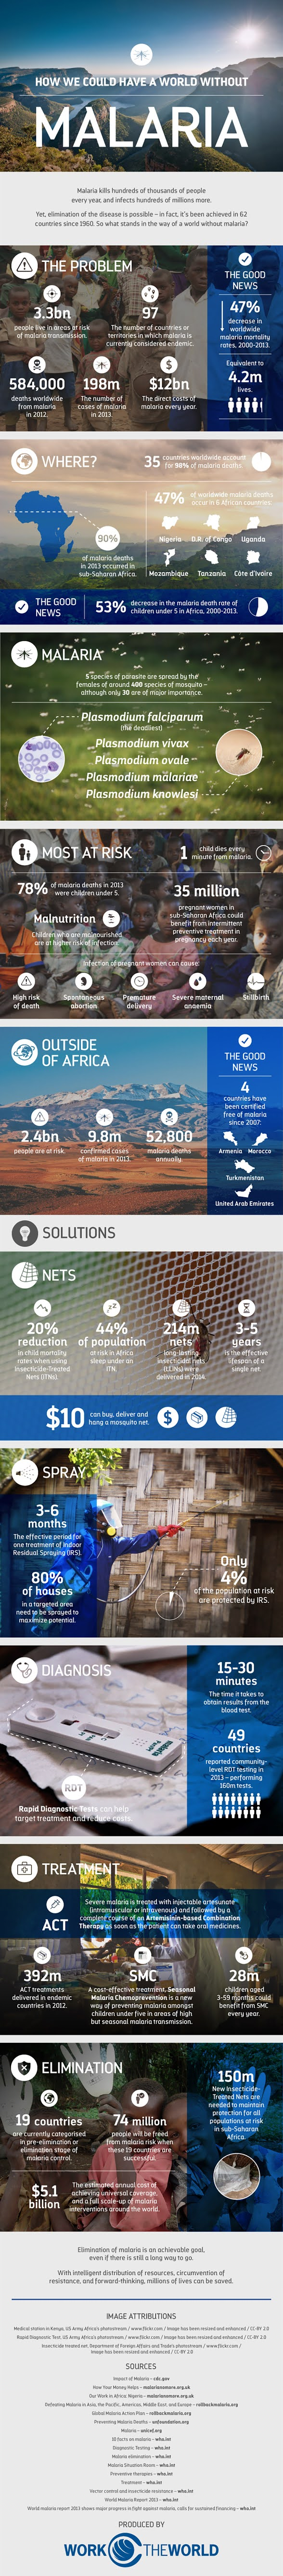 How We Could Have a World Without Malaria? #infographic